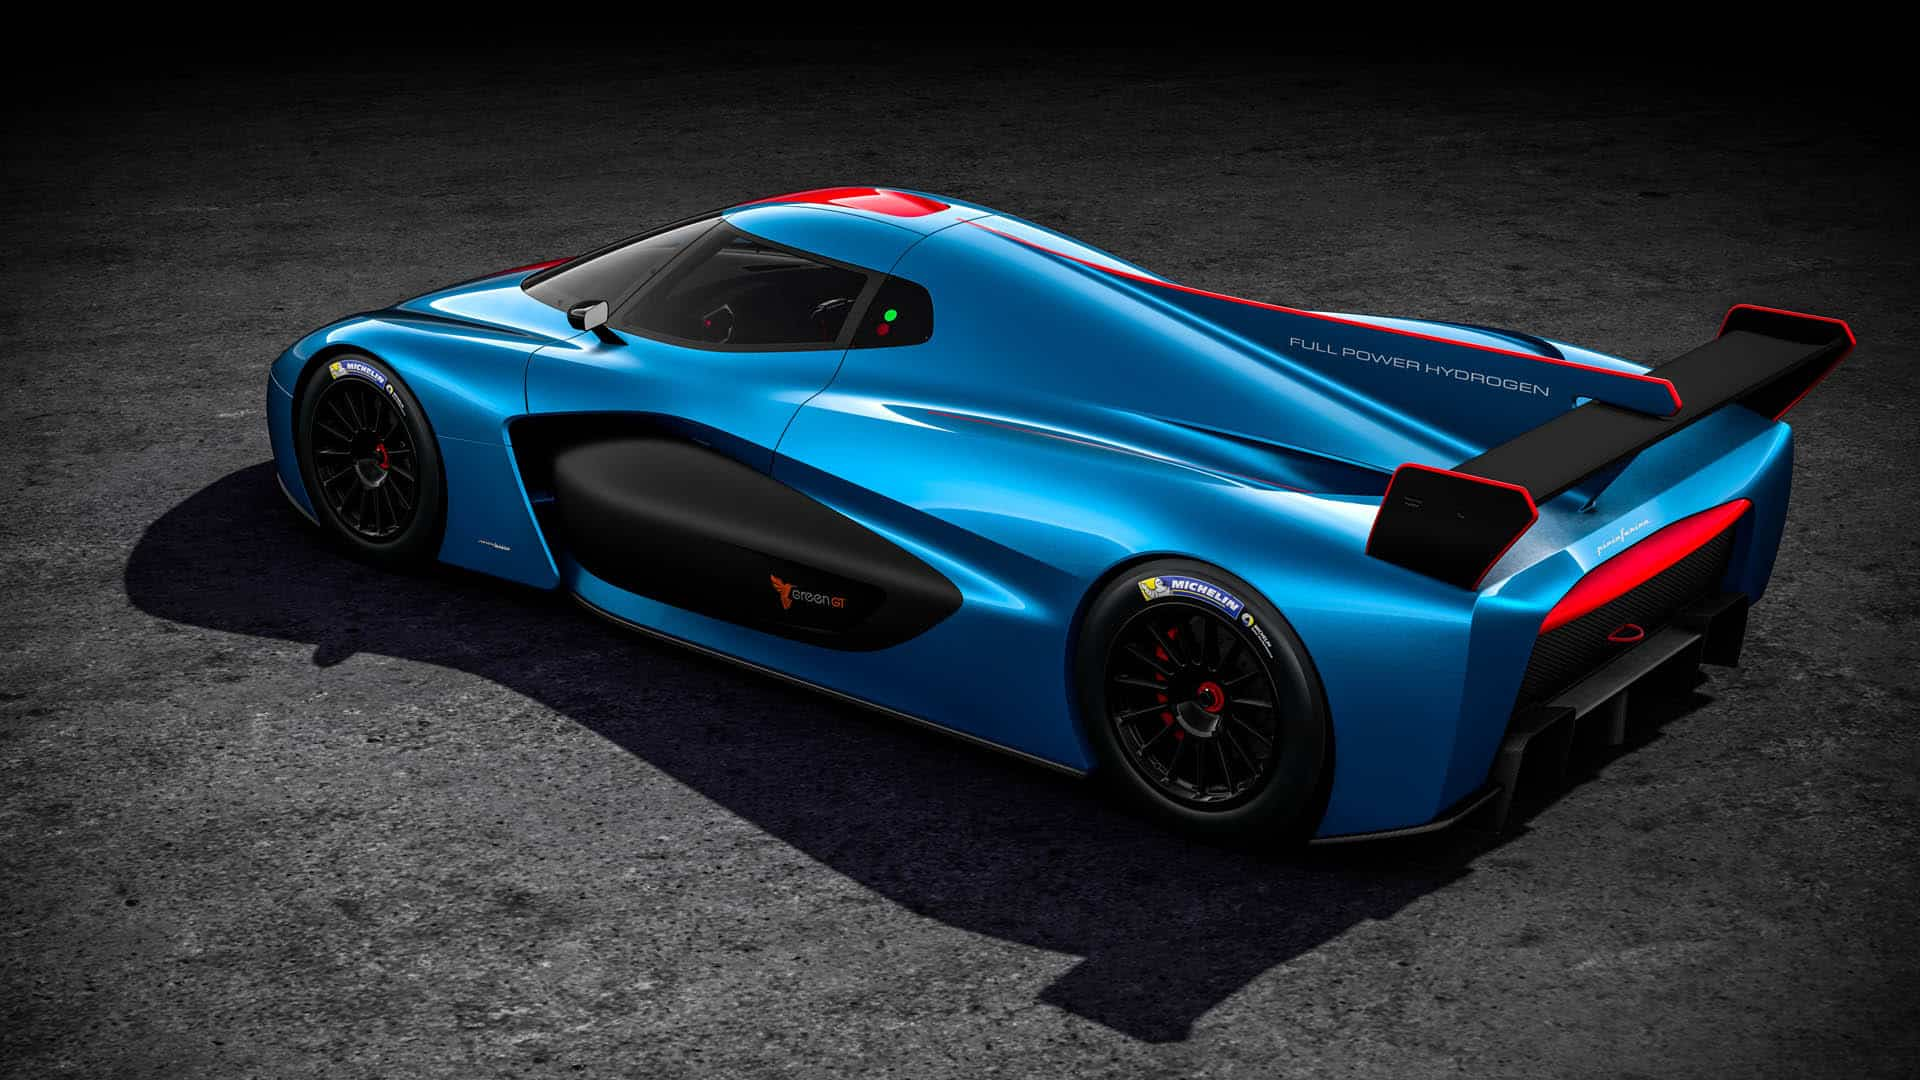 Pininfarina H2 Speed Hydrogen Track Car Moves Into Production